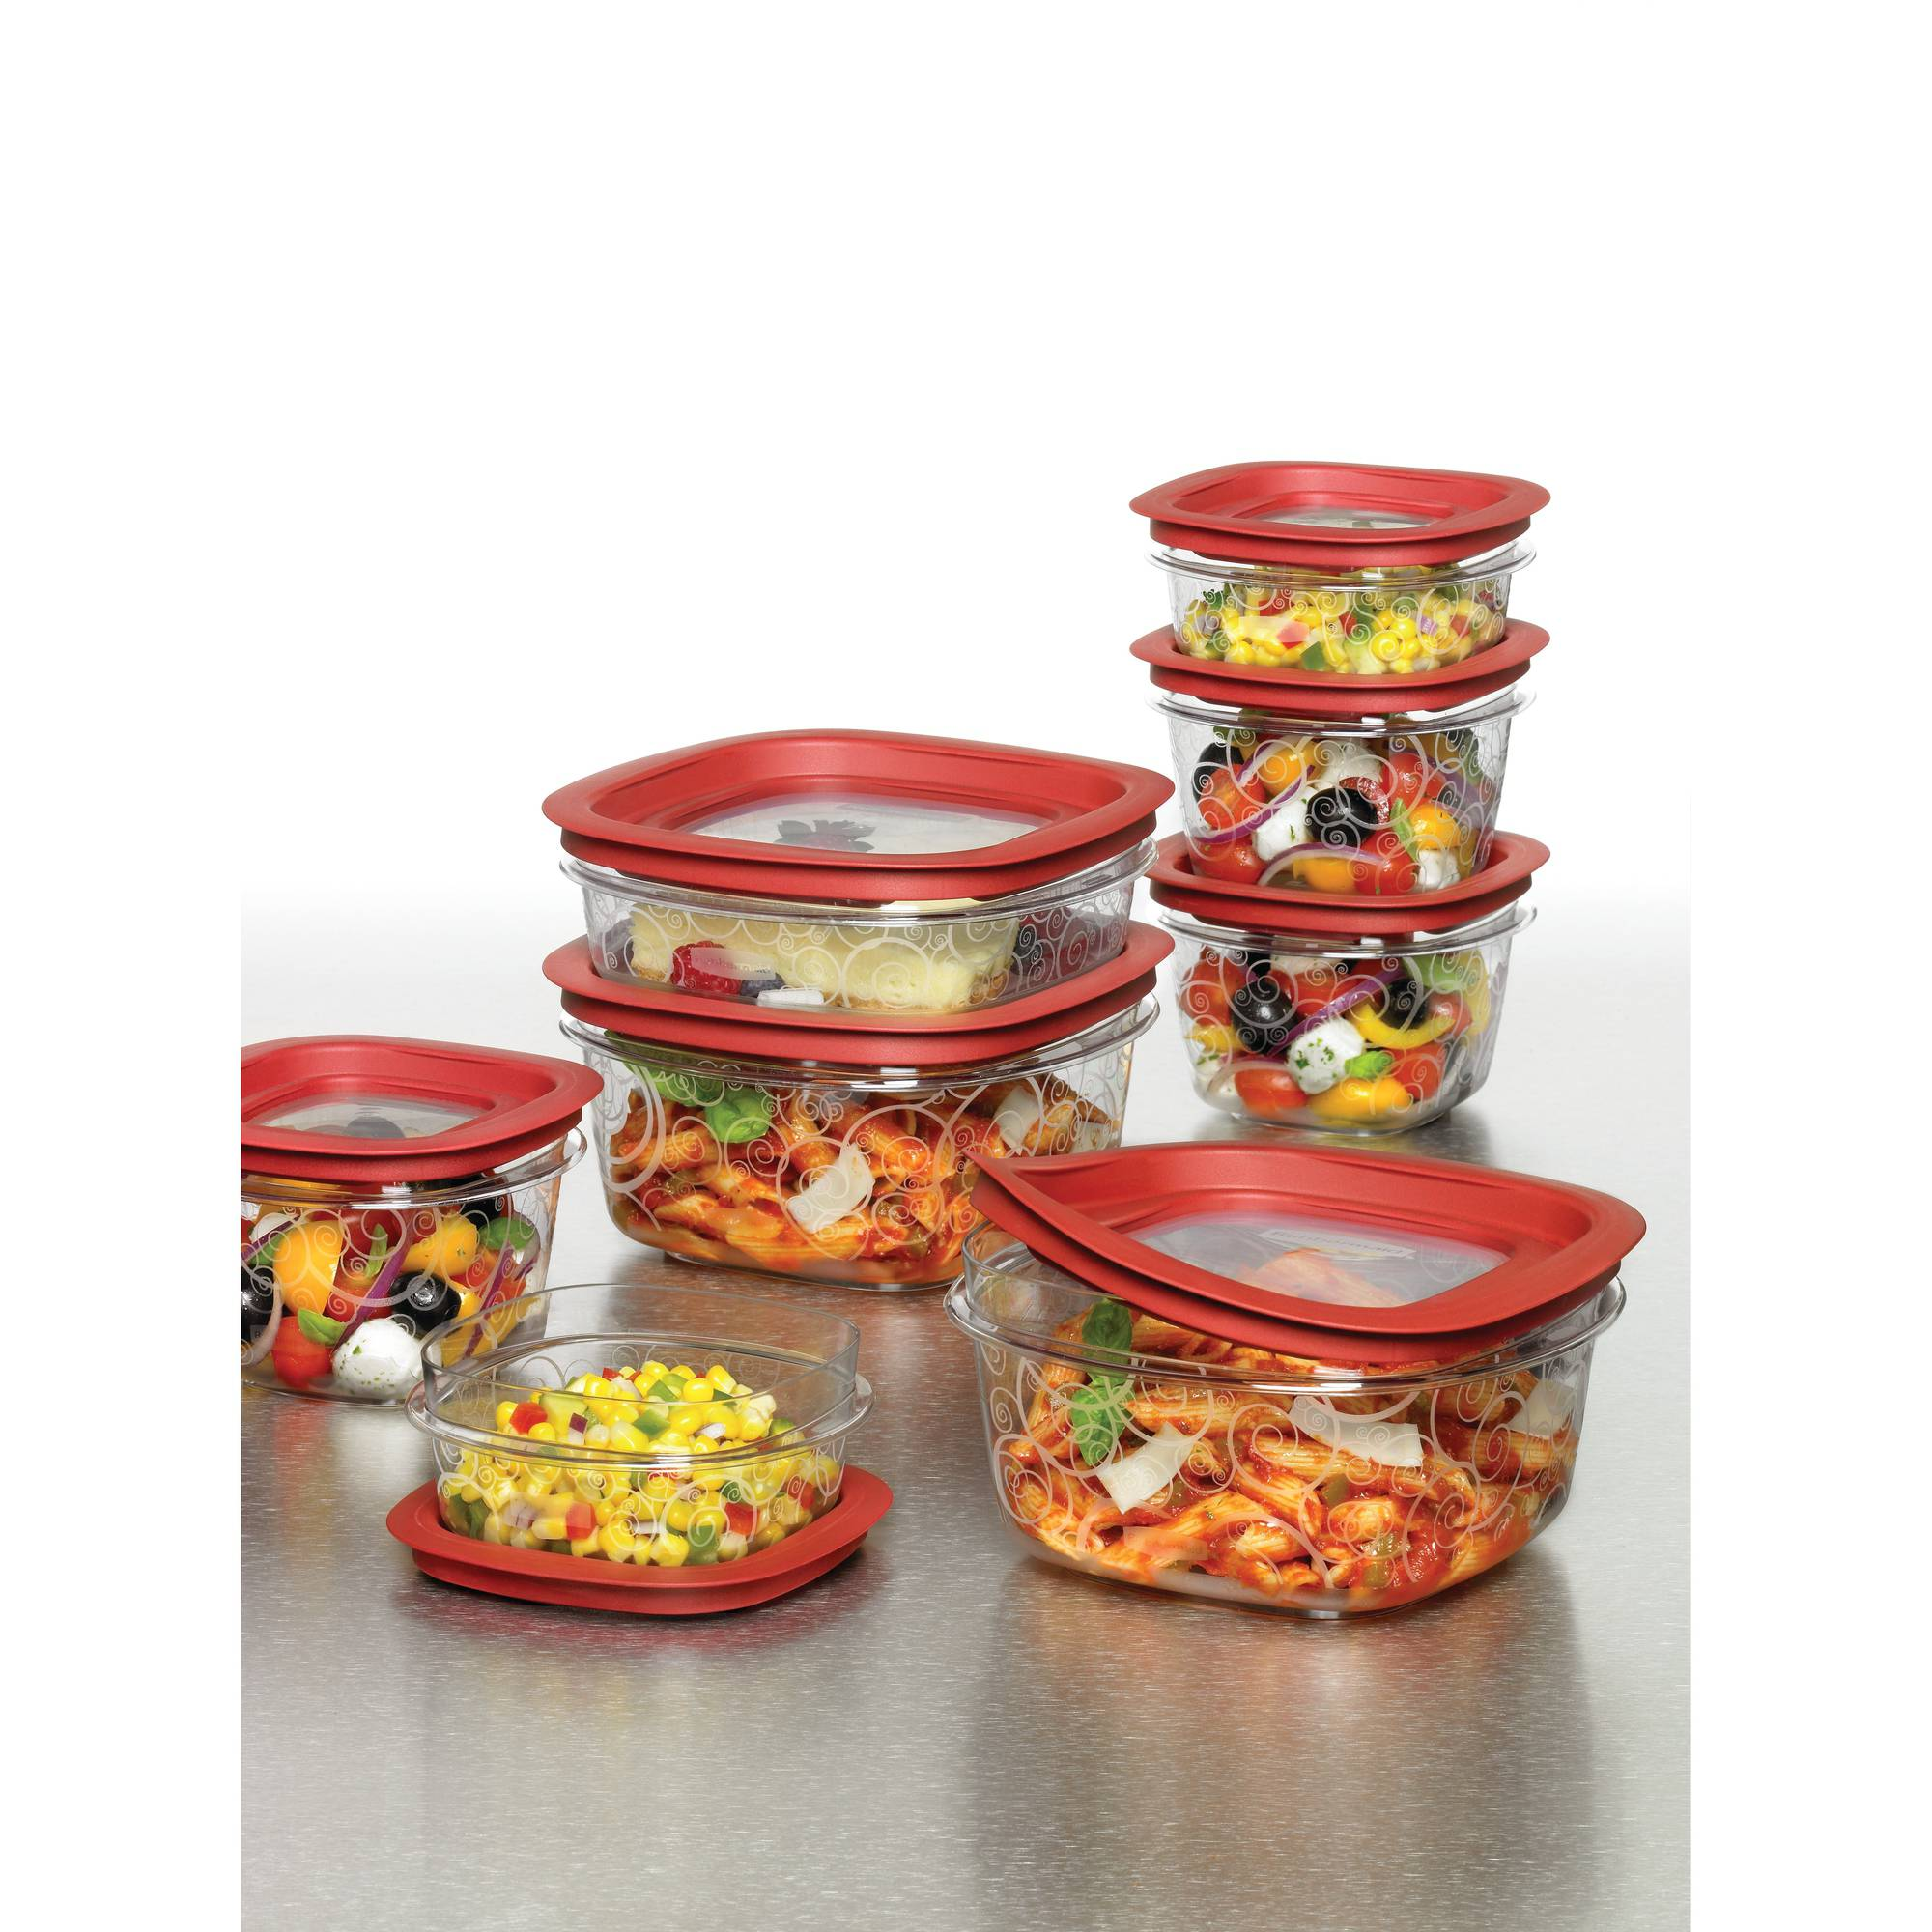 sc 1 st  Walmart & Rubbermaid 16-Piece Premier Food Storage Set - Walmart.com